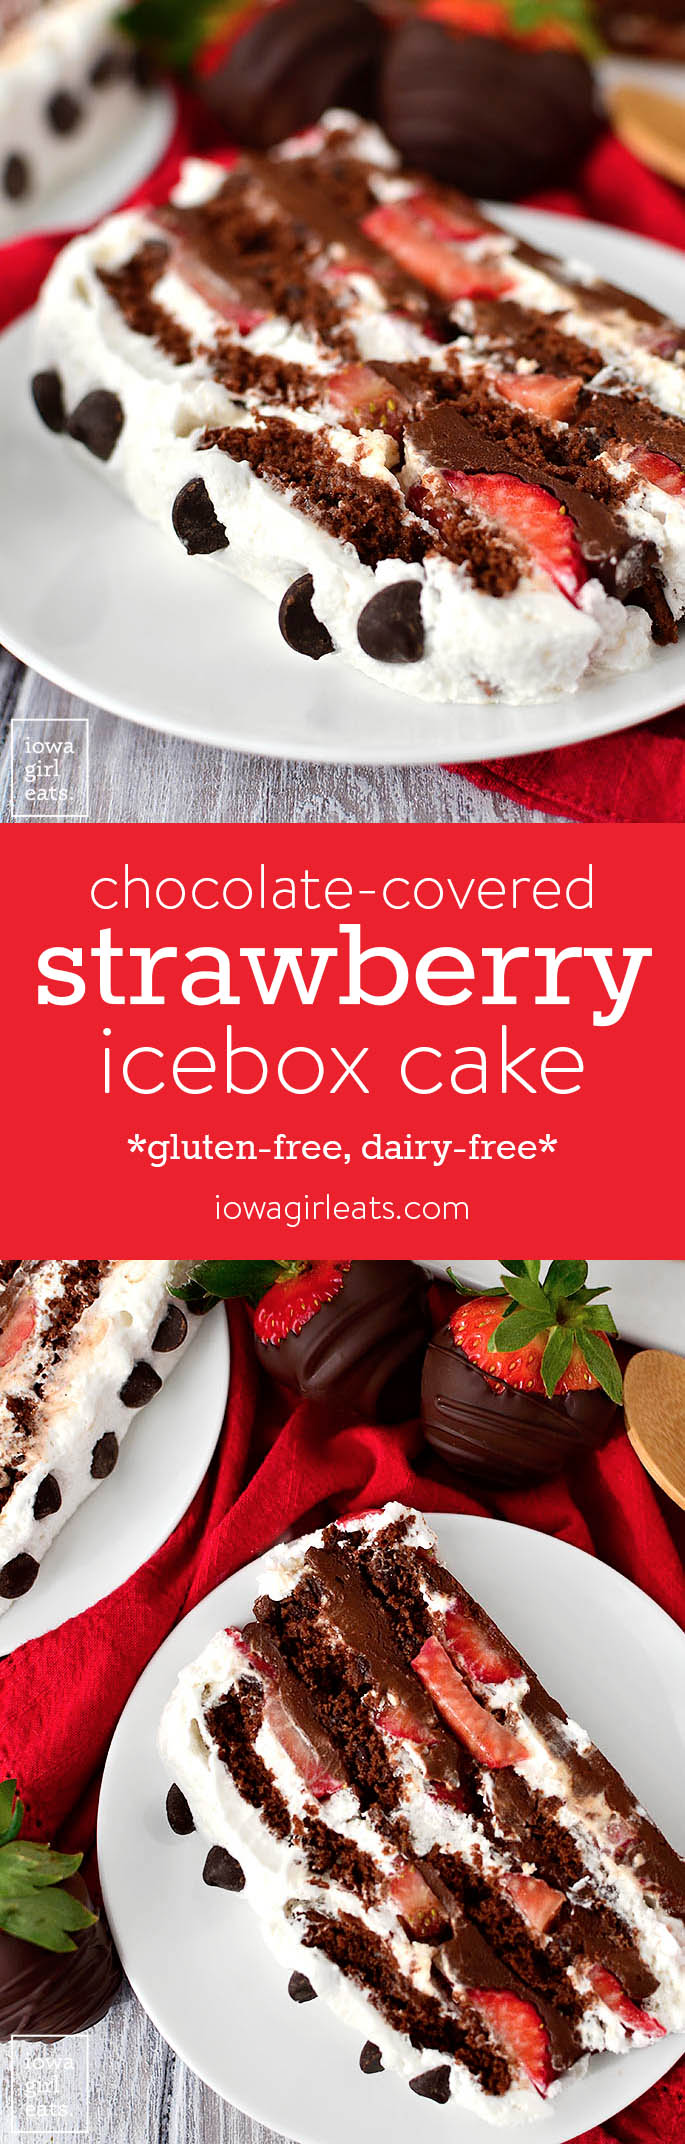 Chocolate-Covered Strawberry Icebox Cake is for serious chocolate lovers only! This gluten-free, dairy-free dessert recipe is decadent, sweet, and packed with chocolate. | iowagirleats.com